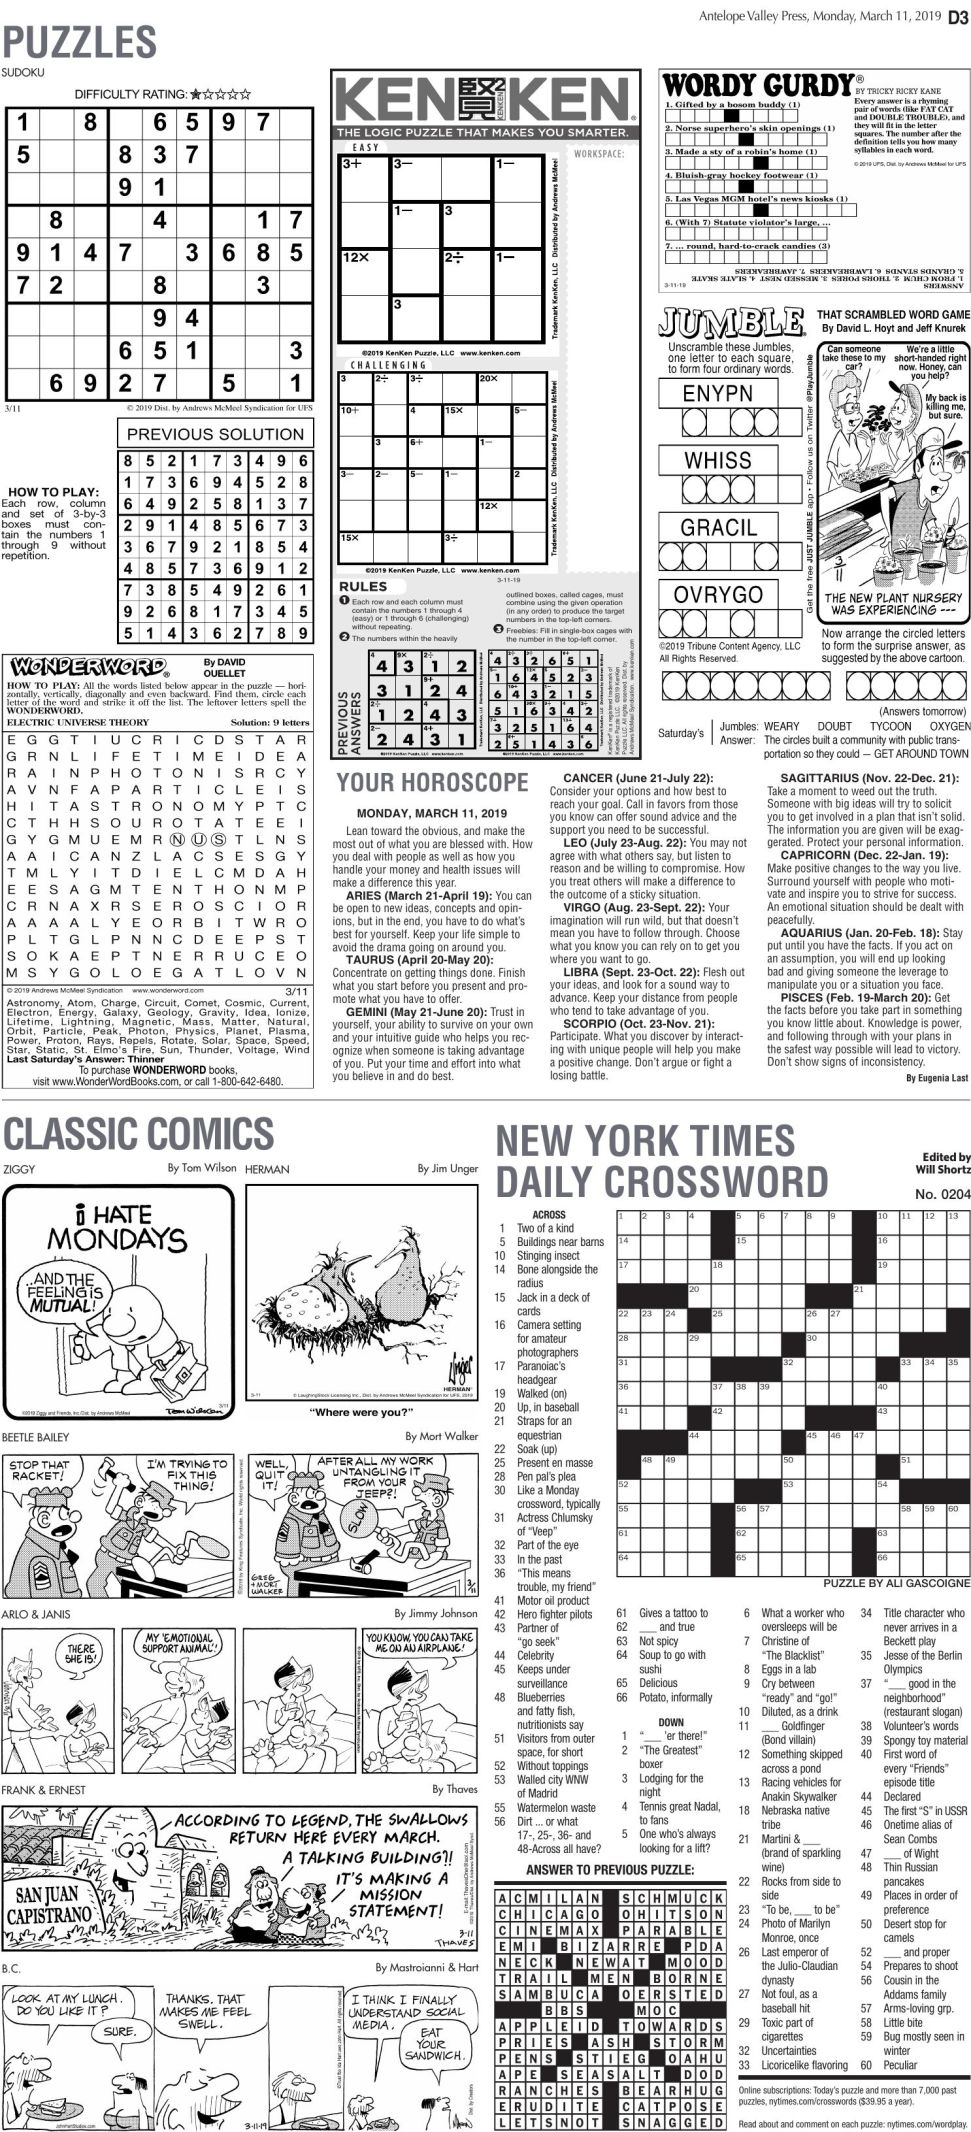 March 11, 2019 Puzzles